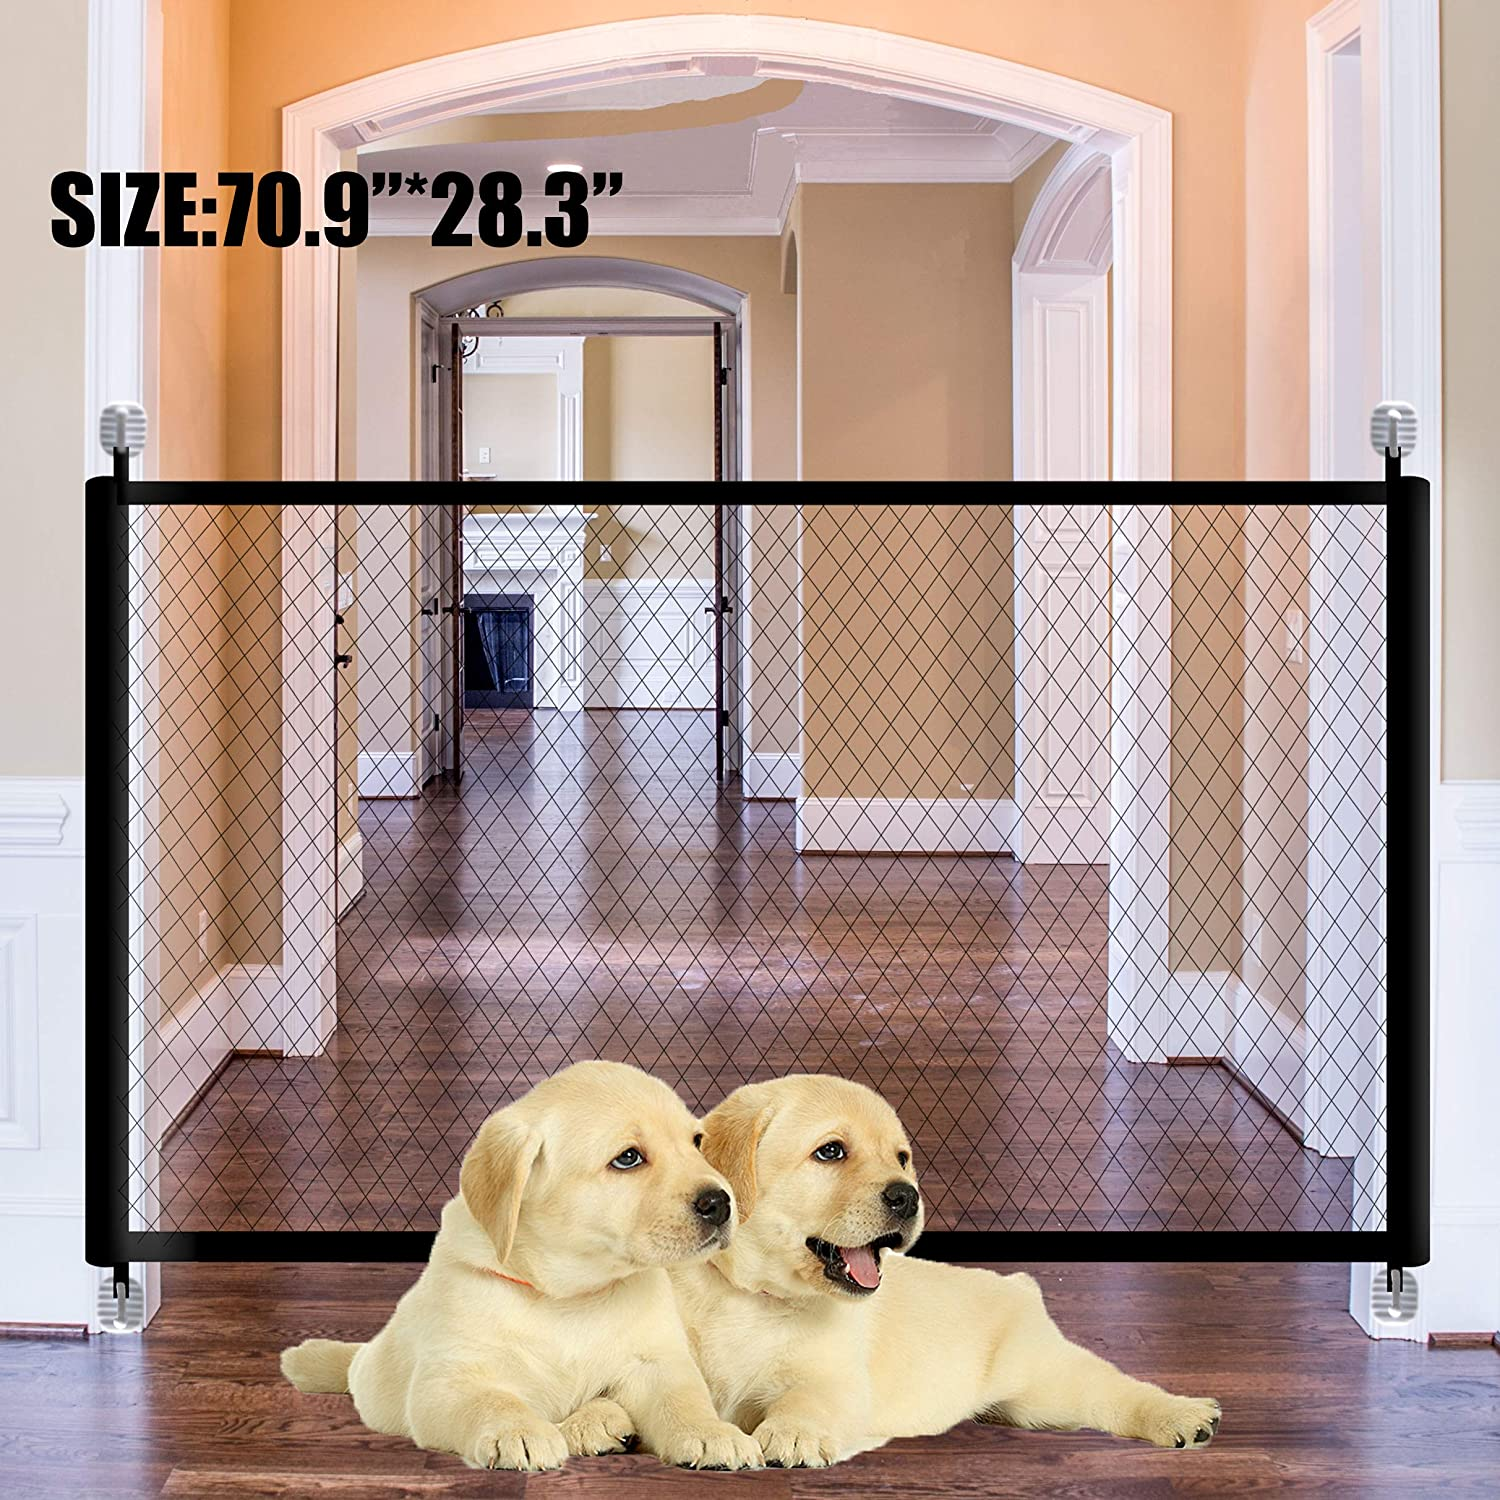 Magic Gate for Dogs Pet Safety Gate Dog Magic Guard Safety Gates Portable Folding Mesh Safety Fence 70.9 x28.3 Inch Isolated Gauze Doorway Indoor and Outdoor Install Anywhere